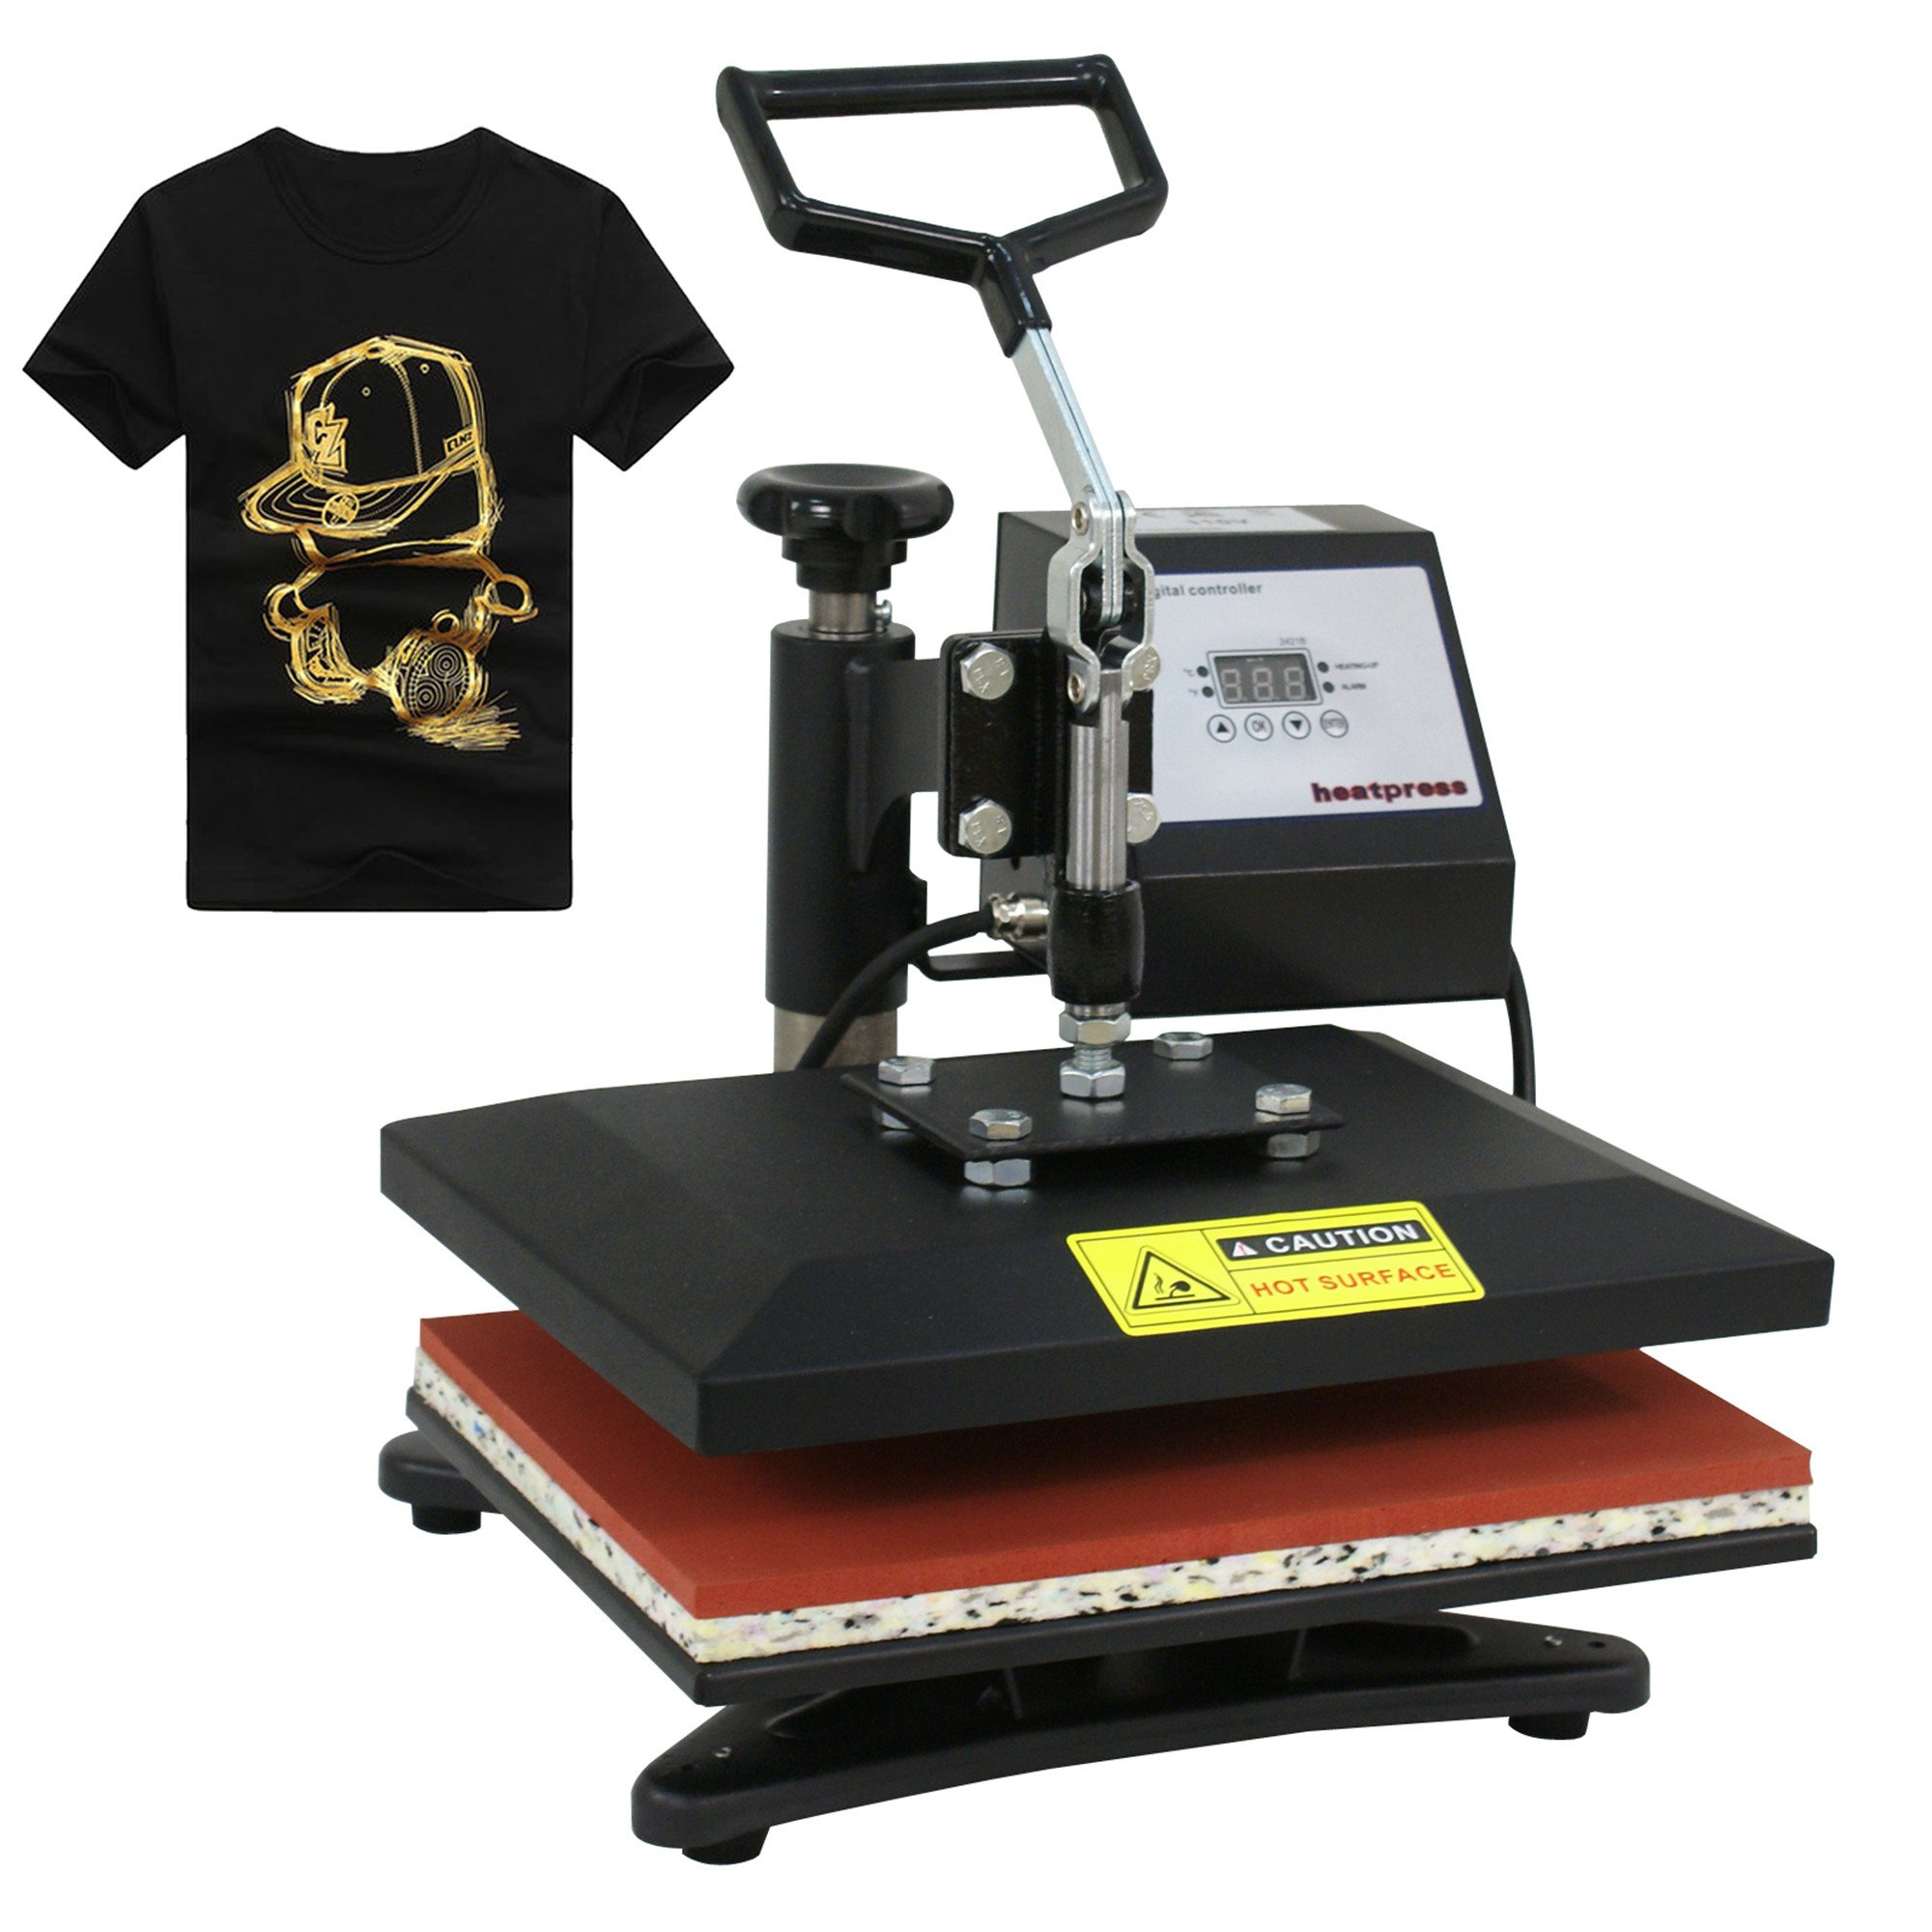 F2C 12'' x 10'' Pro Home 360 Degree Rotation Swing-Away Digital T-Shirt Heat Press Heat Transfer Press Machine by F2C